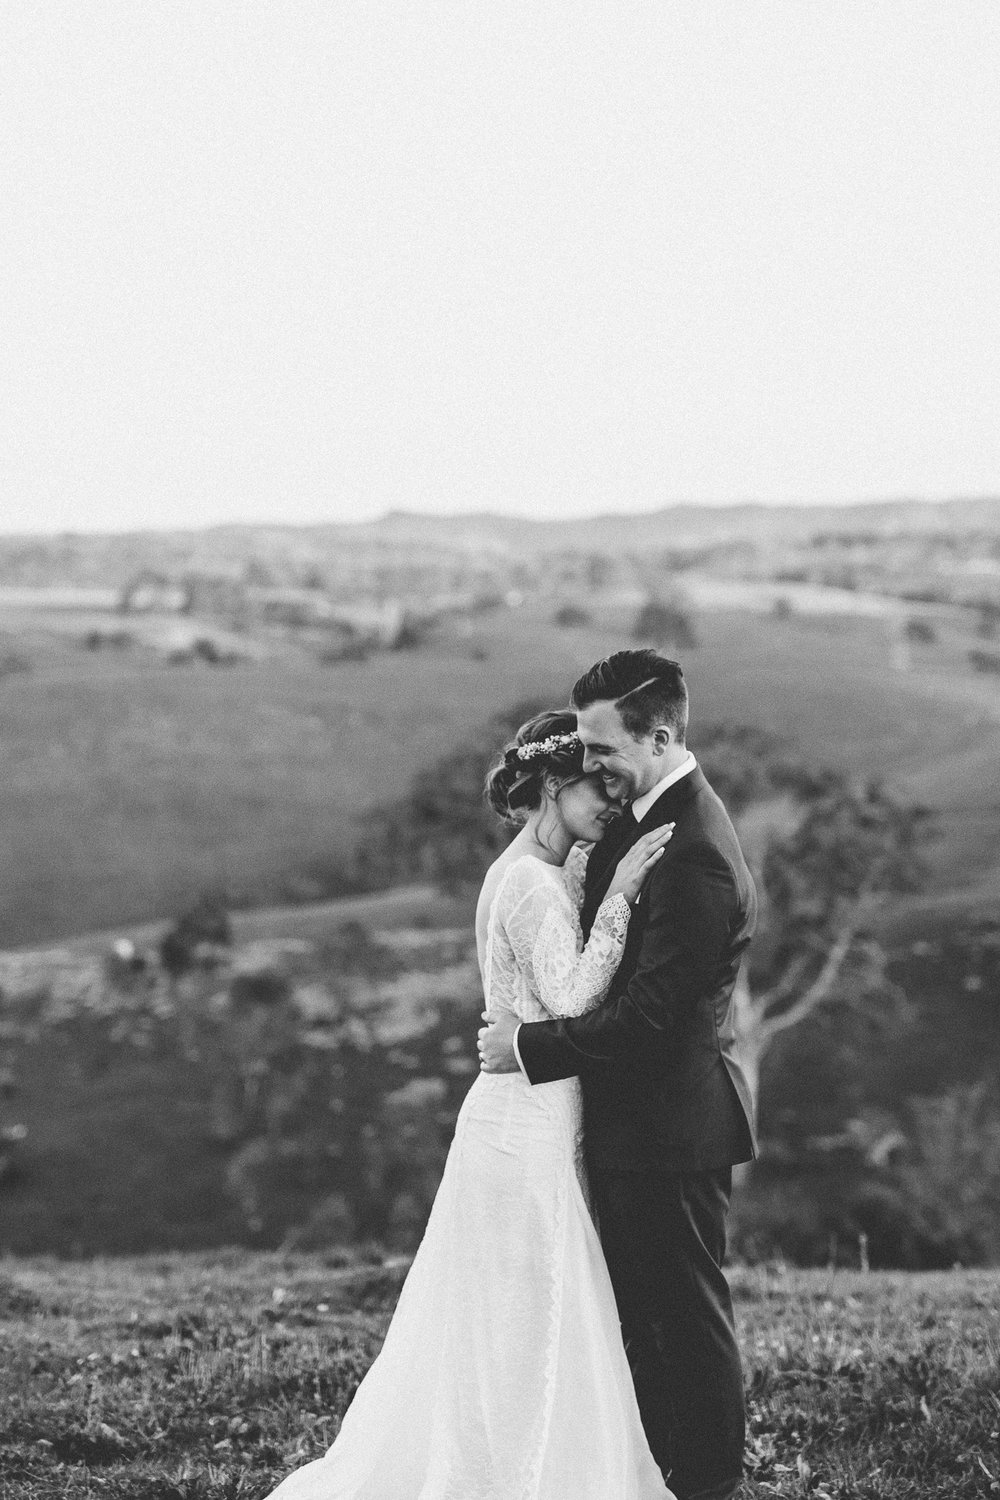 christopher morrison_adelaide hills wedding_ andy + teegan_141_1044.jpg